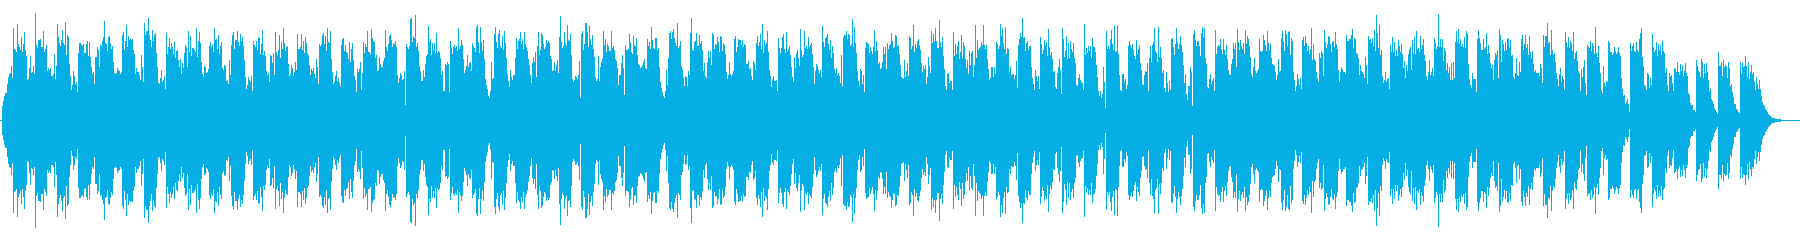 Loose erhu BGM's reproduced waveform